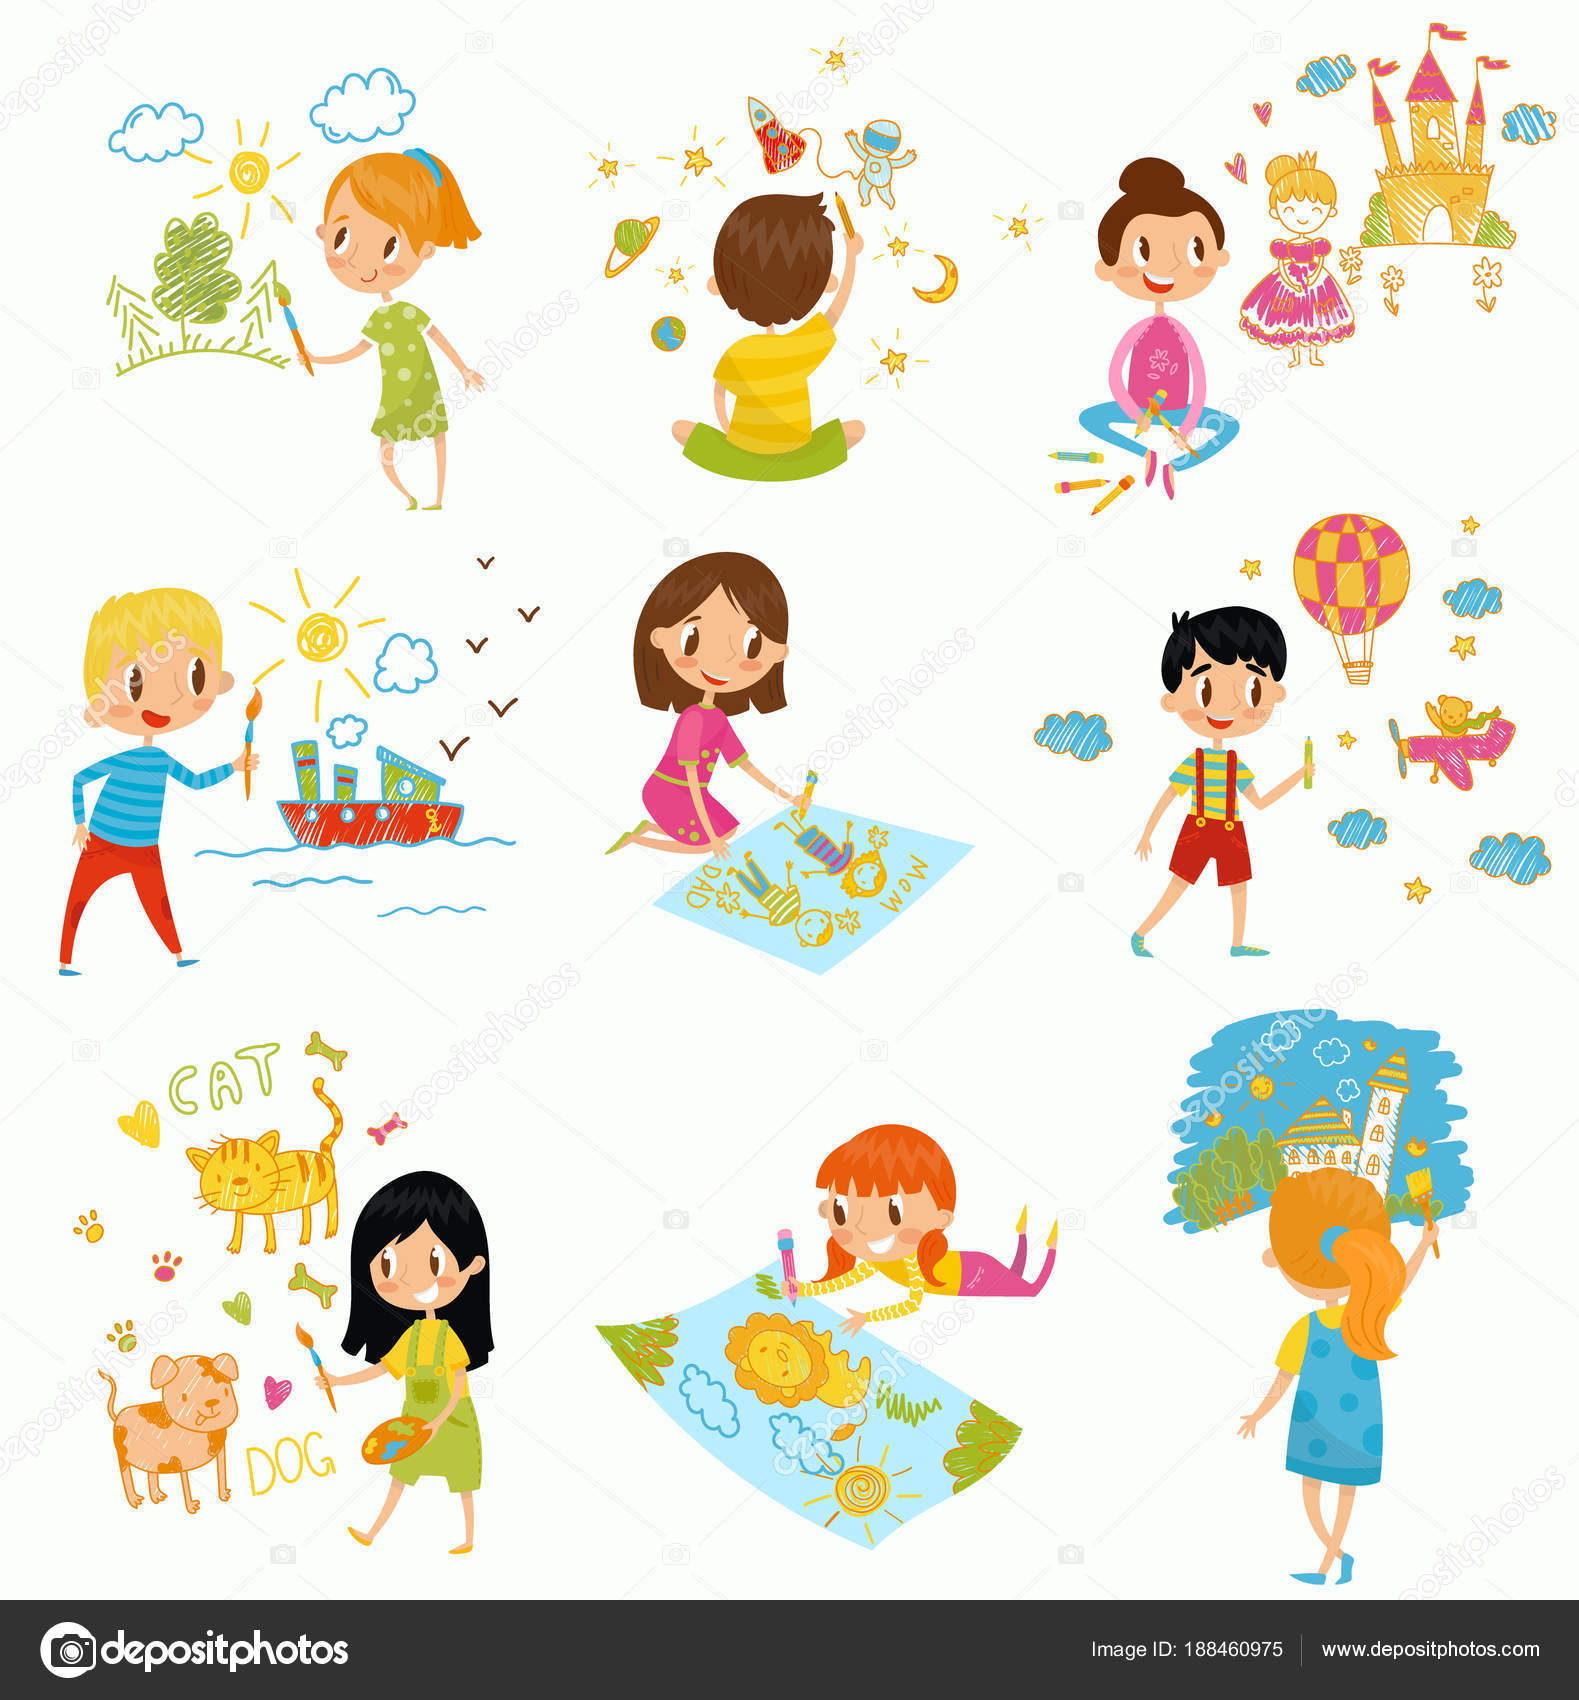 Cute little boys and girls drawing with color paints and pencils set young artists kids activity routine vector illustrations isolated on a white